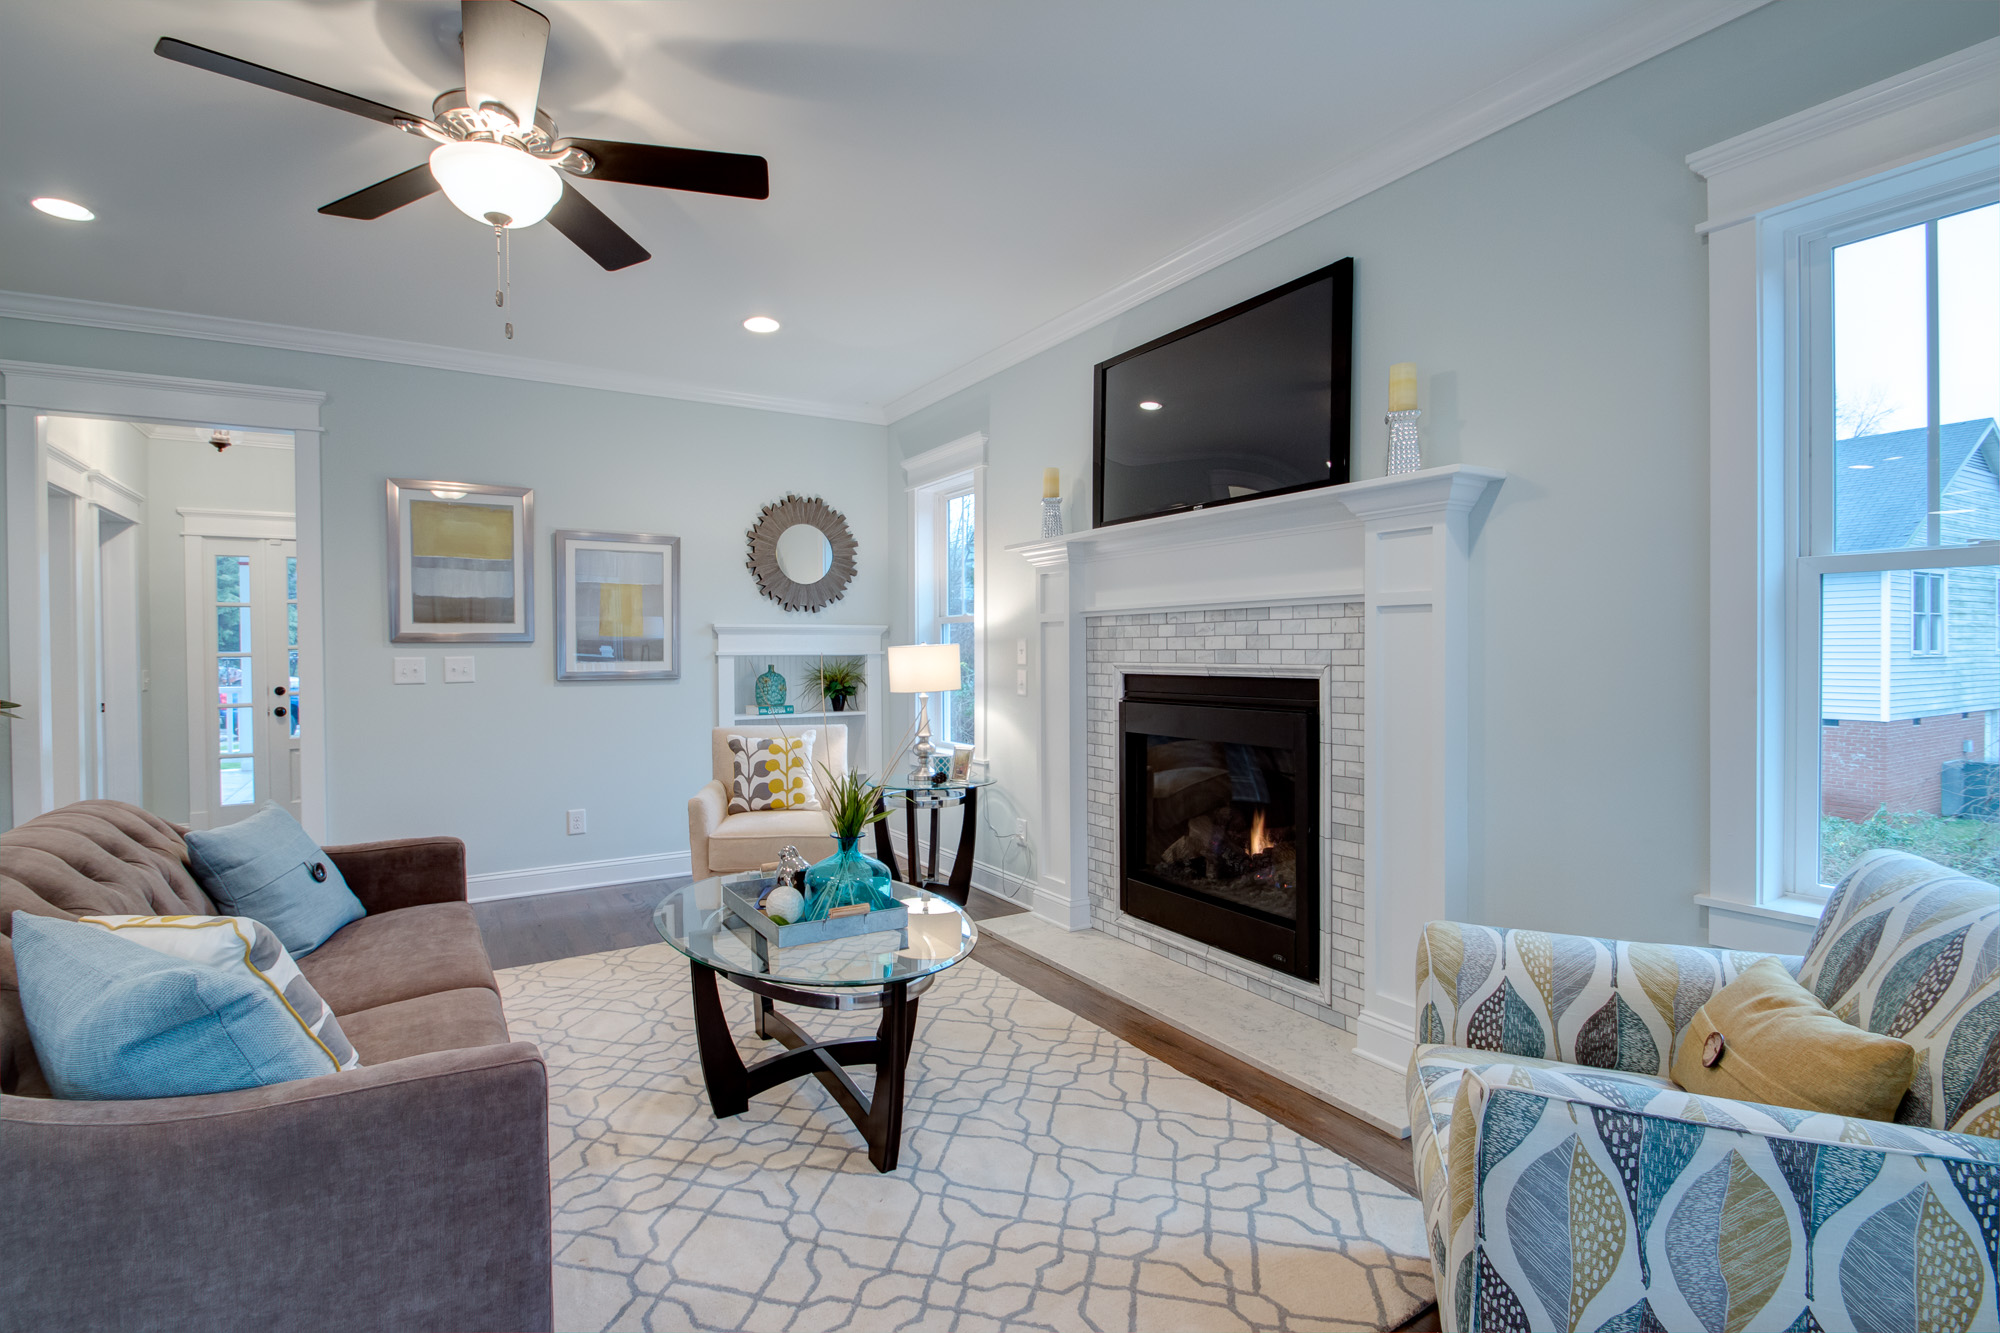 Craftsman living room with a marble tile fireplace, dark hardwood floors, and pale blue, grey walls.